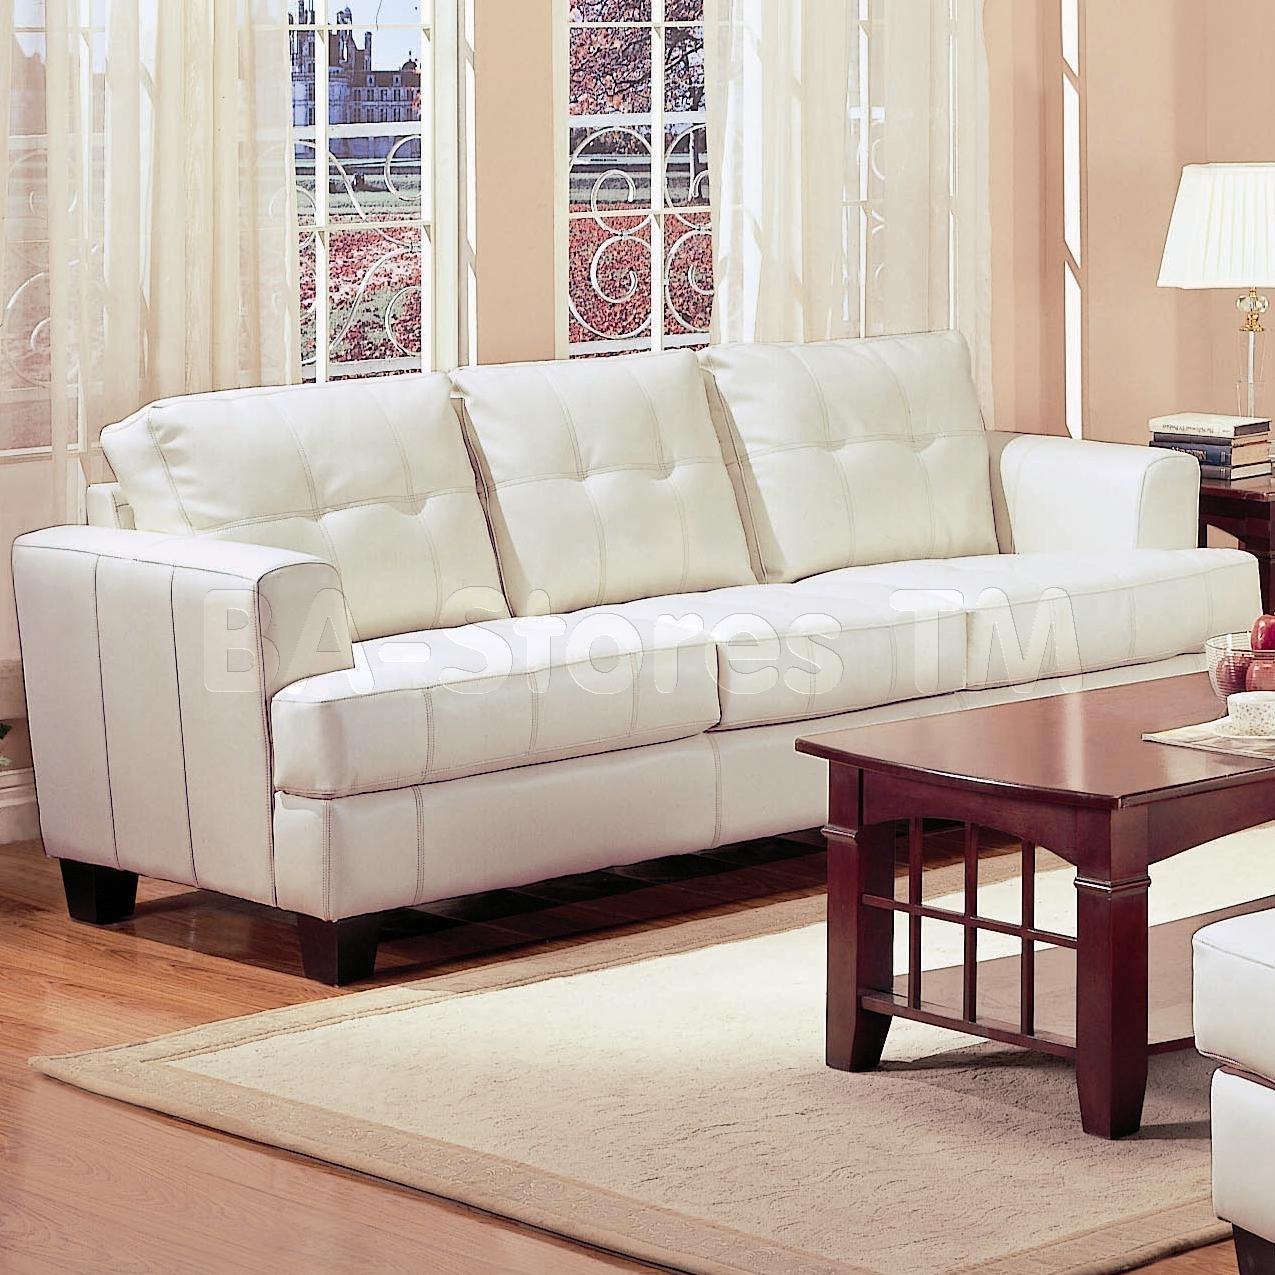 off white sofa sets full size sleeper mattress topper 10 best collection of leather sofas ideas